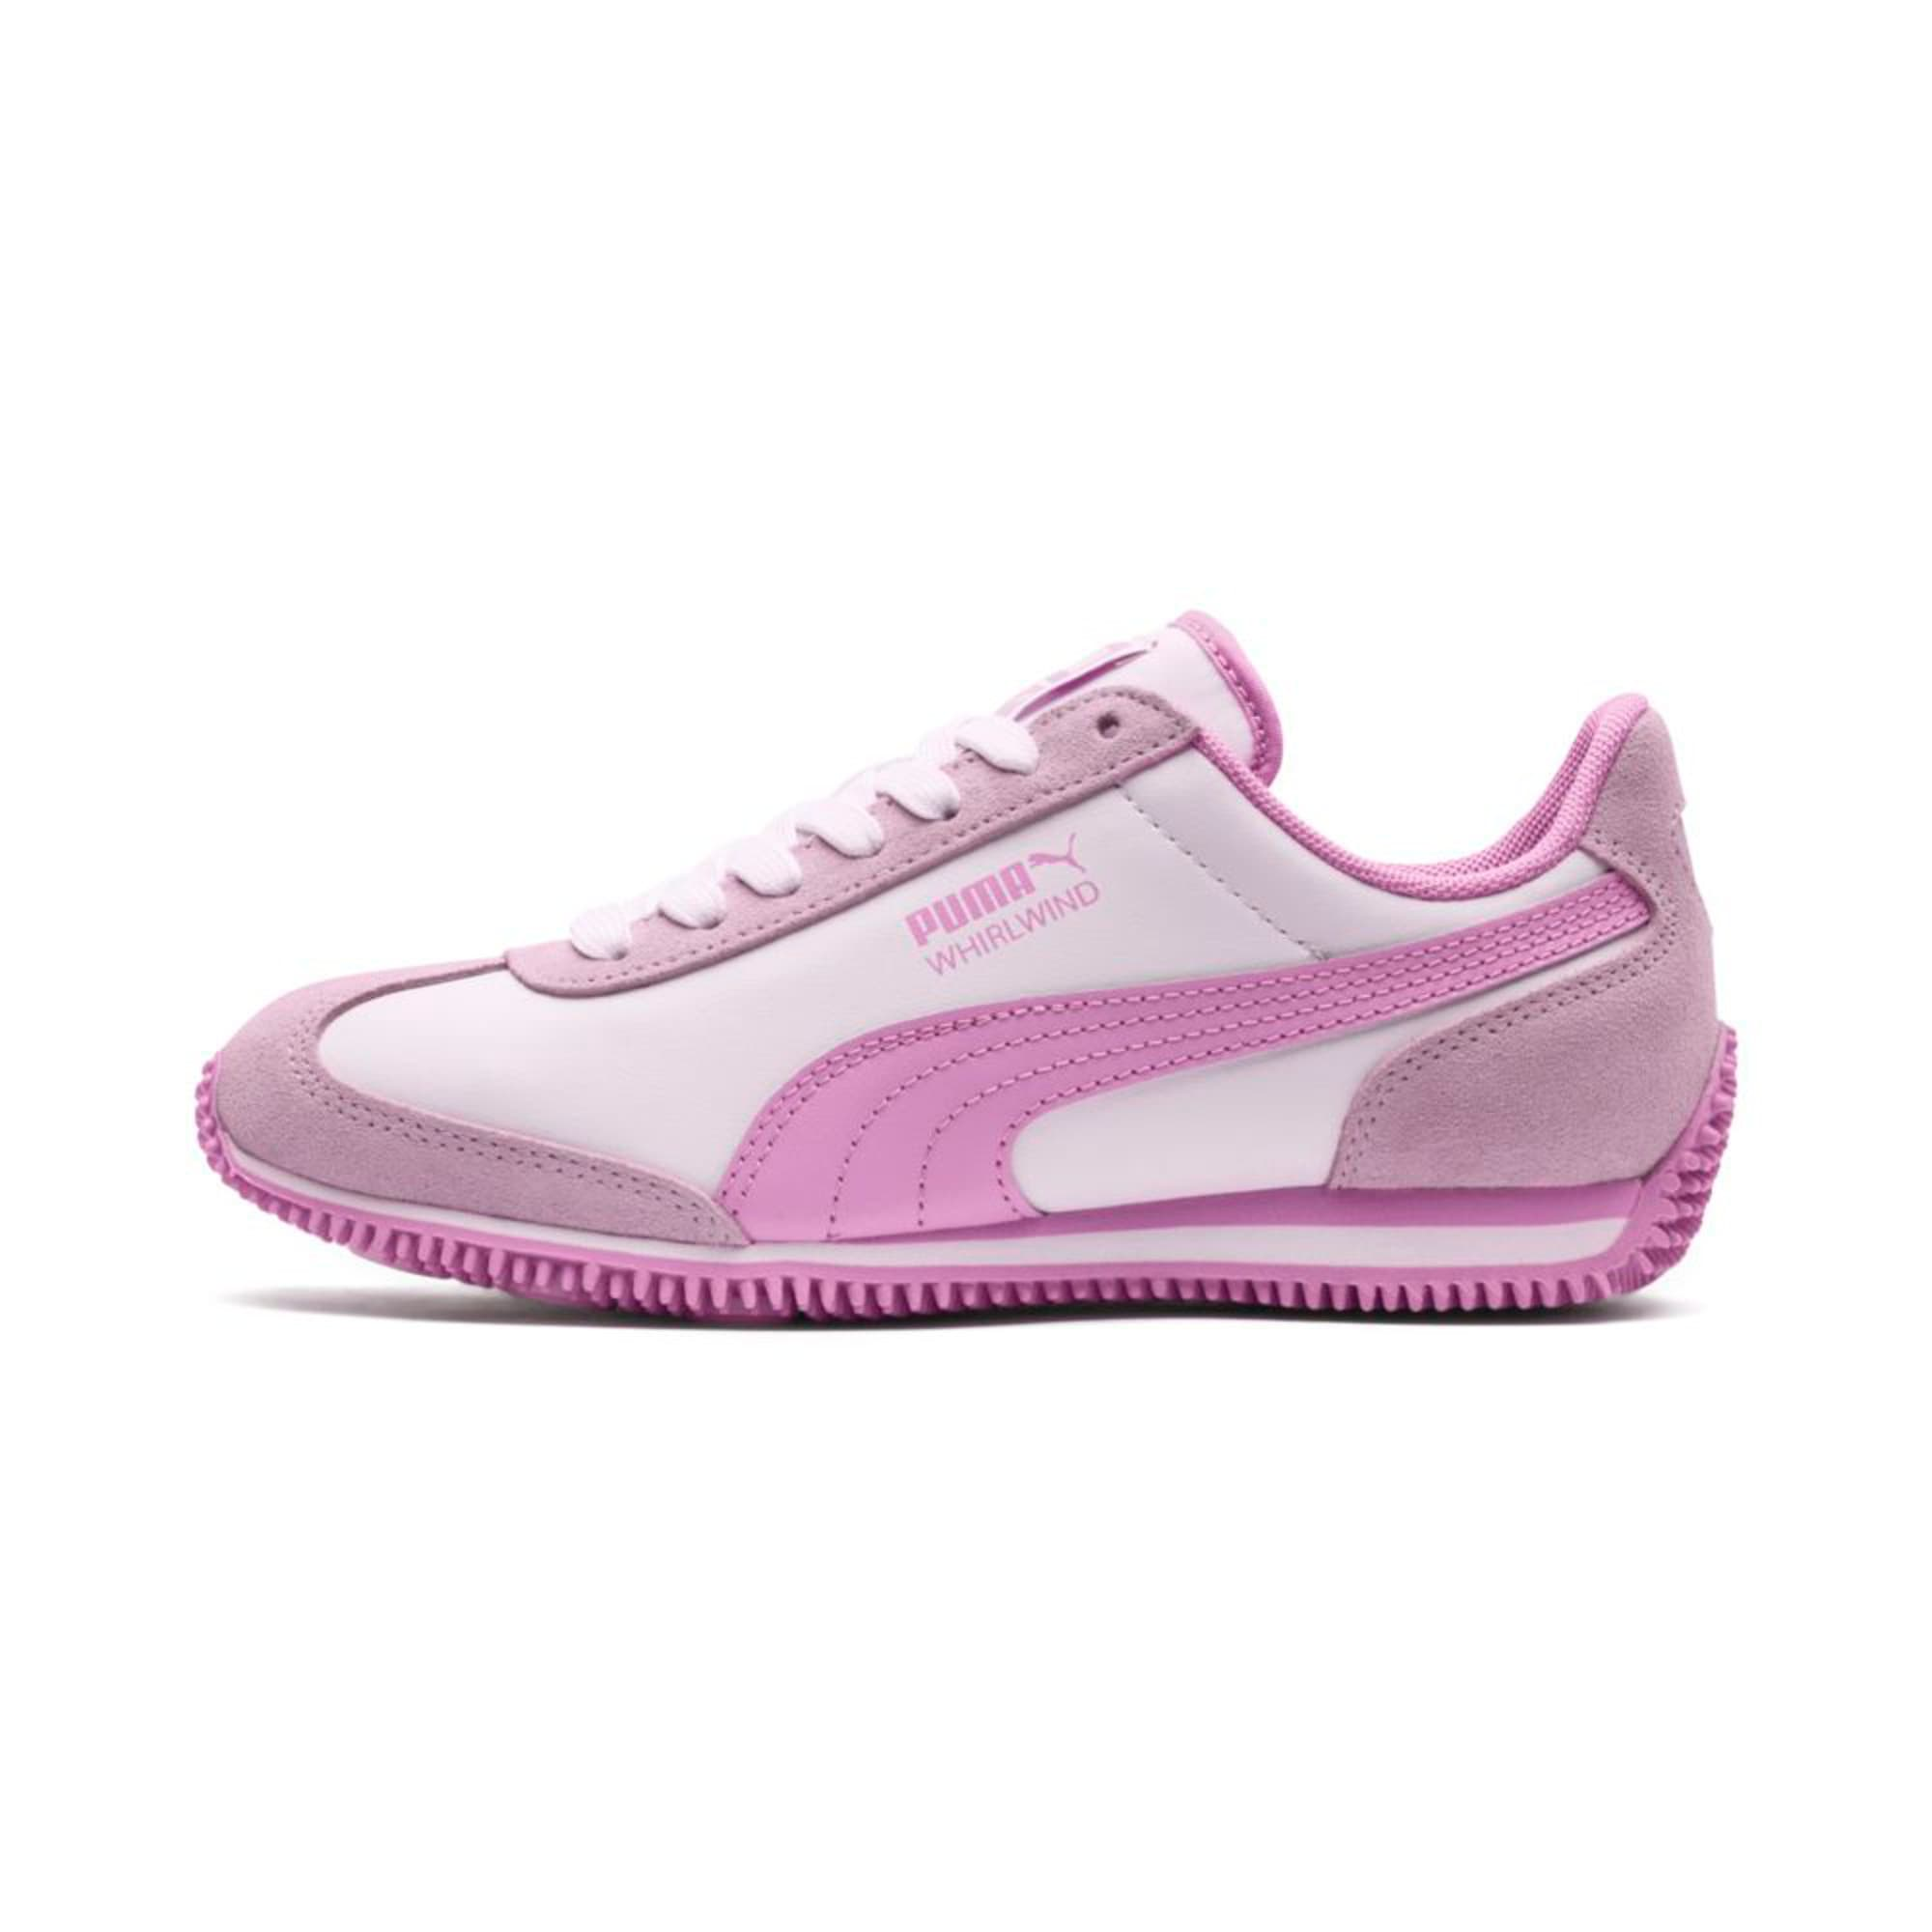 Thumbnail 1 of Kid's Whirlwind Trainers, Puma White-Winsome Orchid, medium-IND